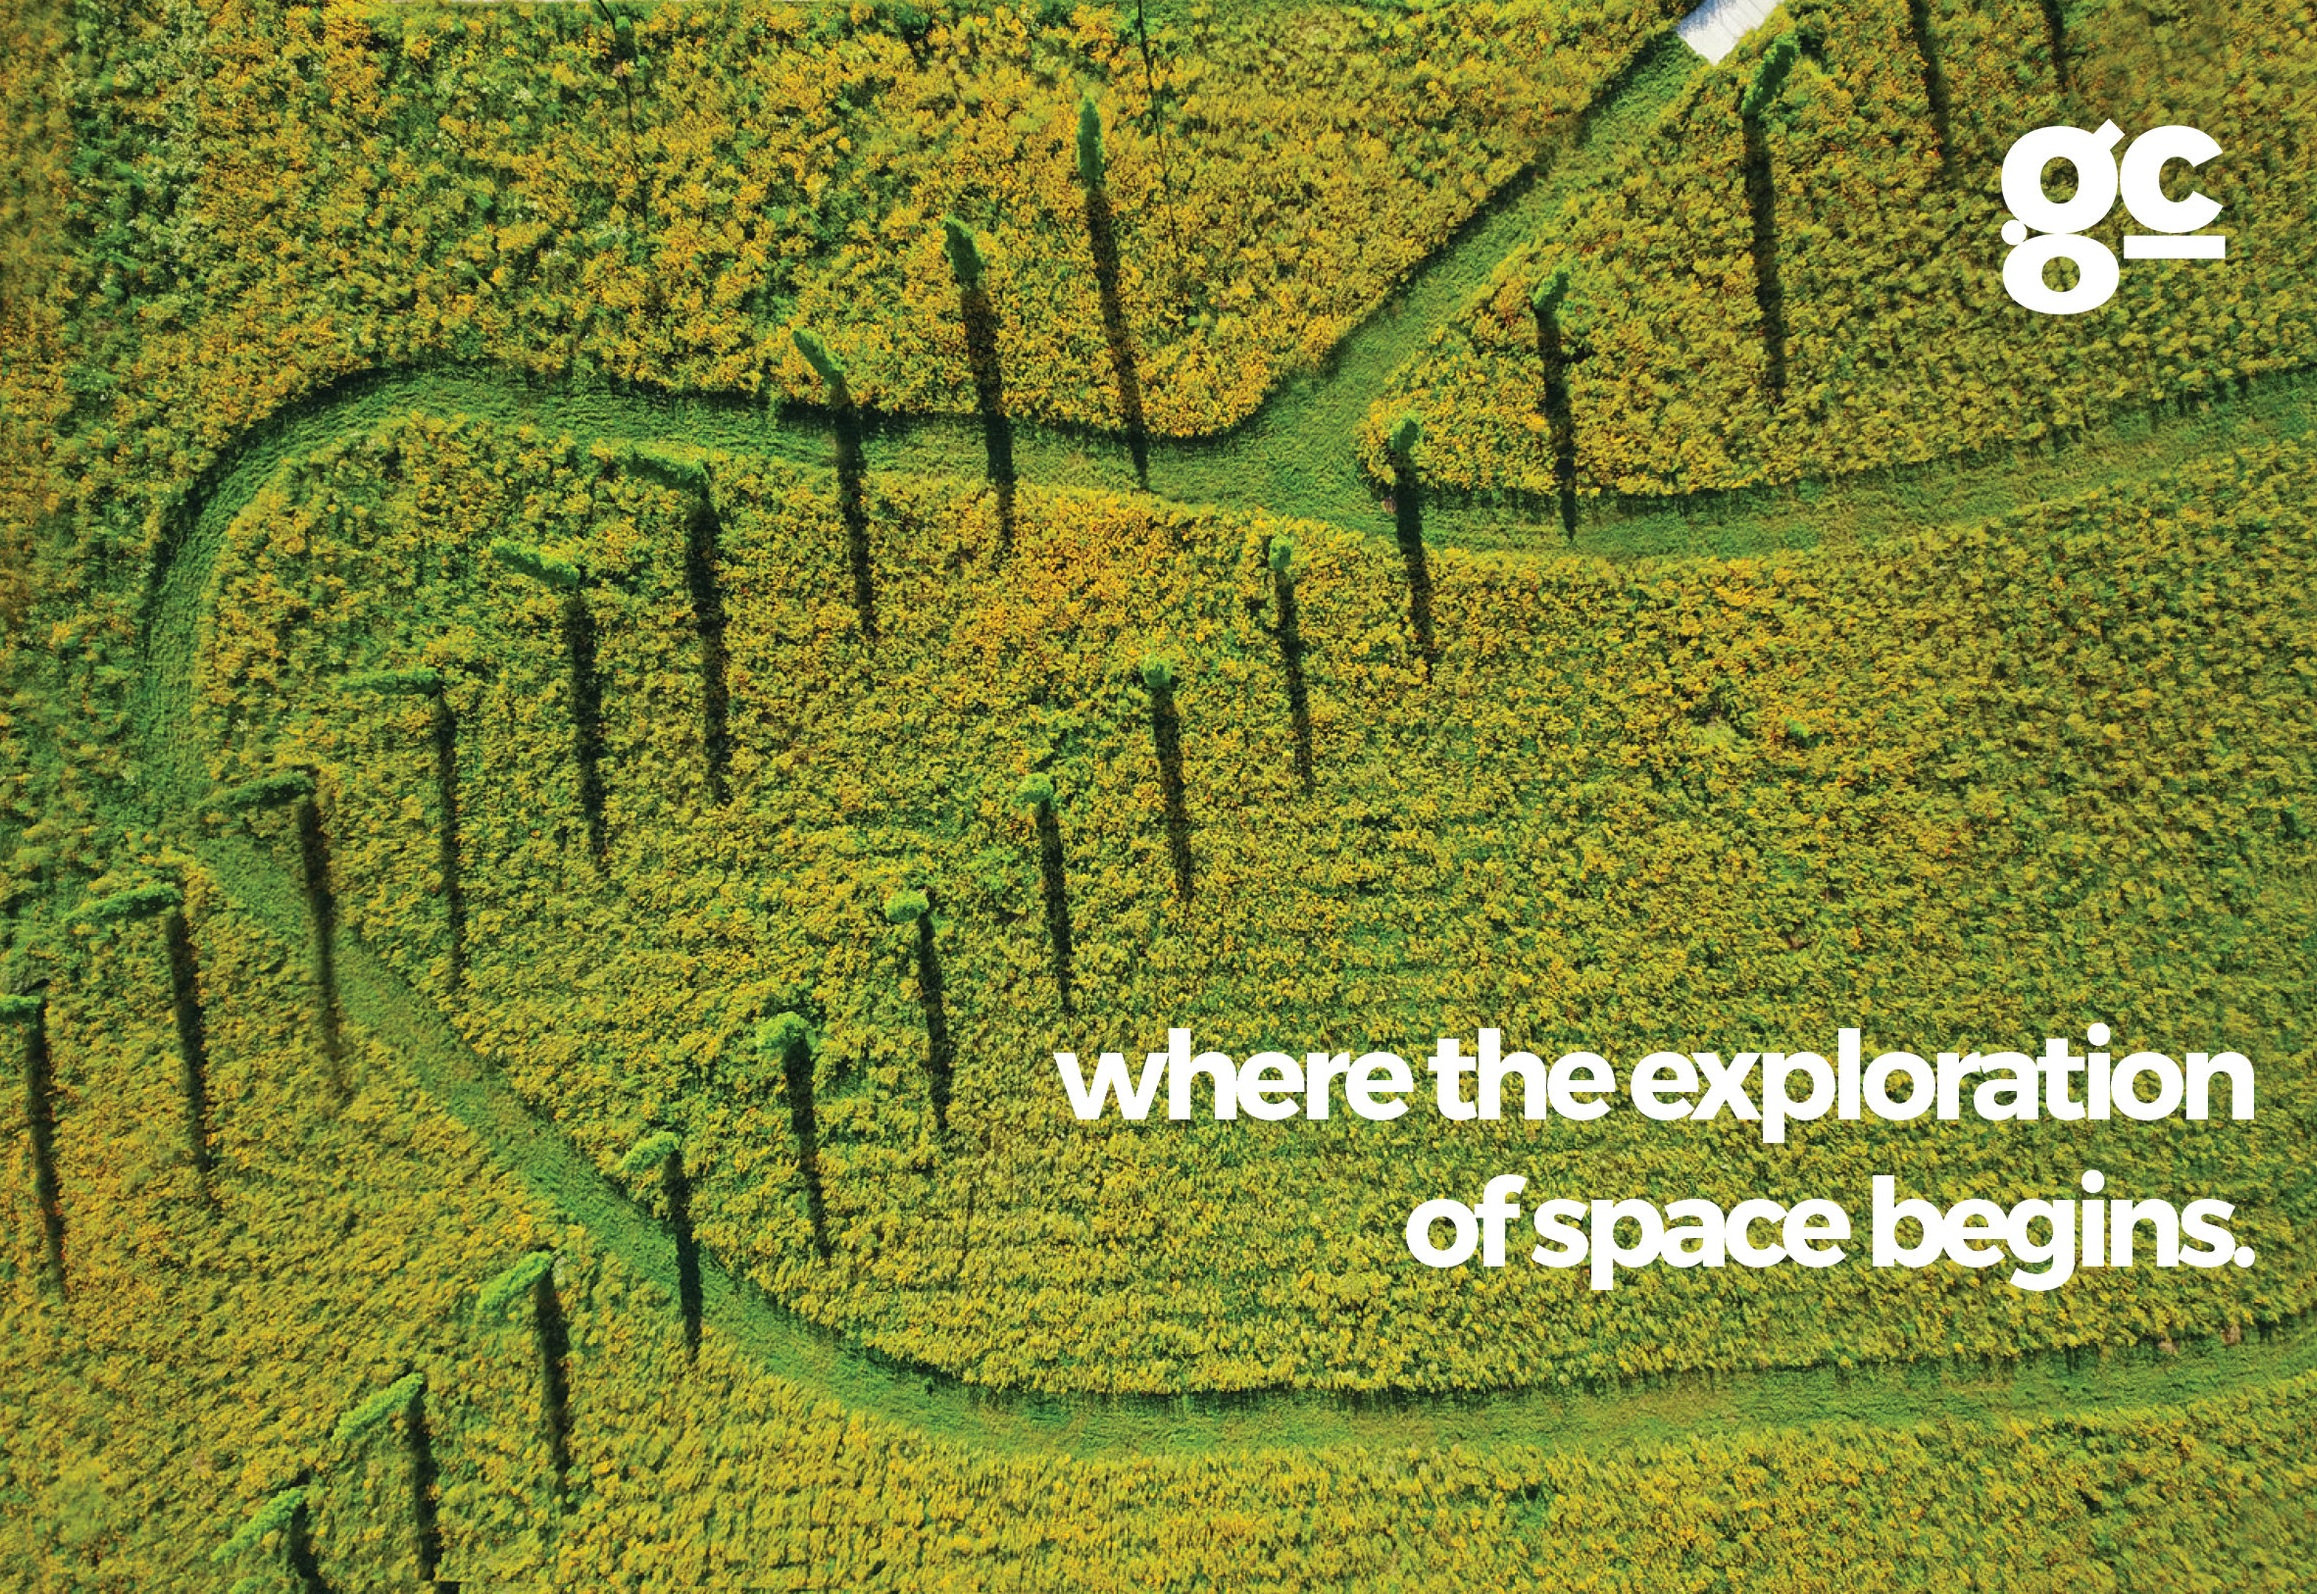 Exploration+of+Space_2.0.jpg